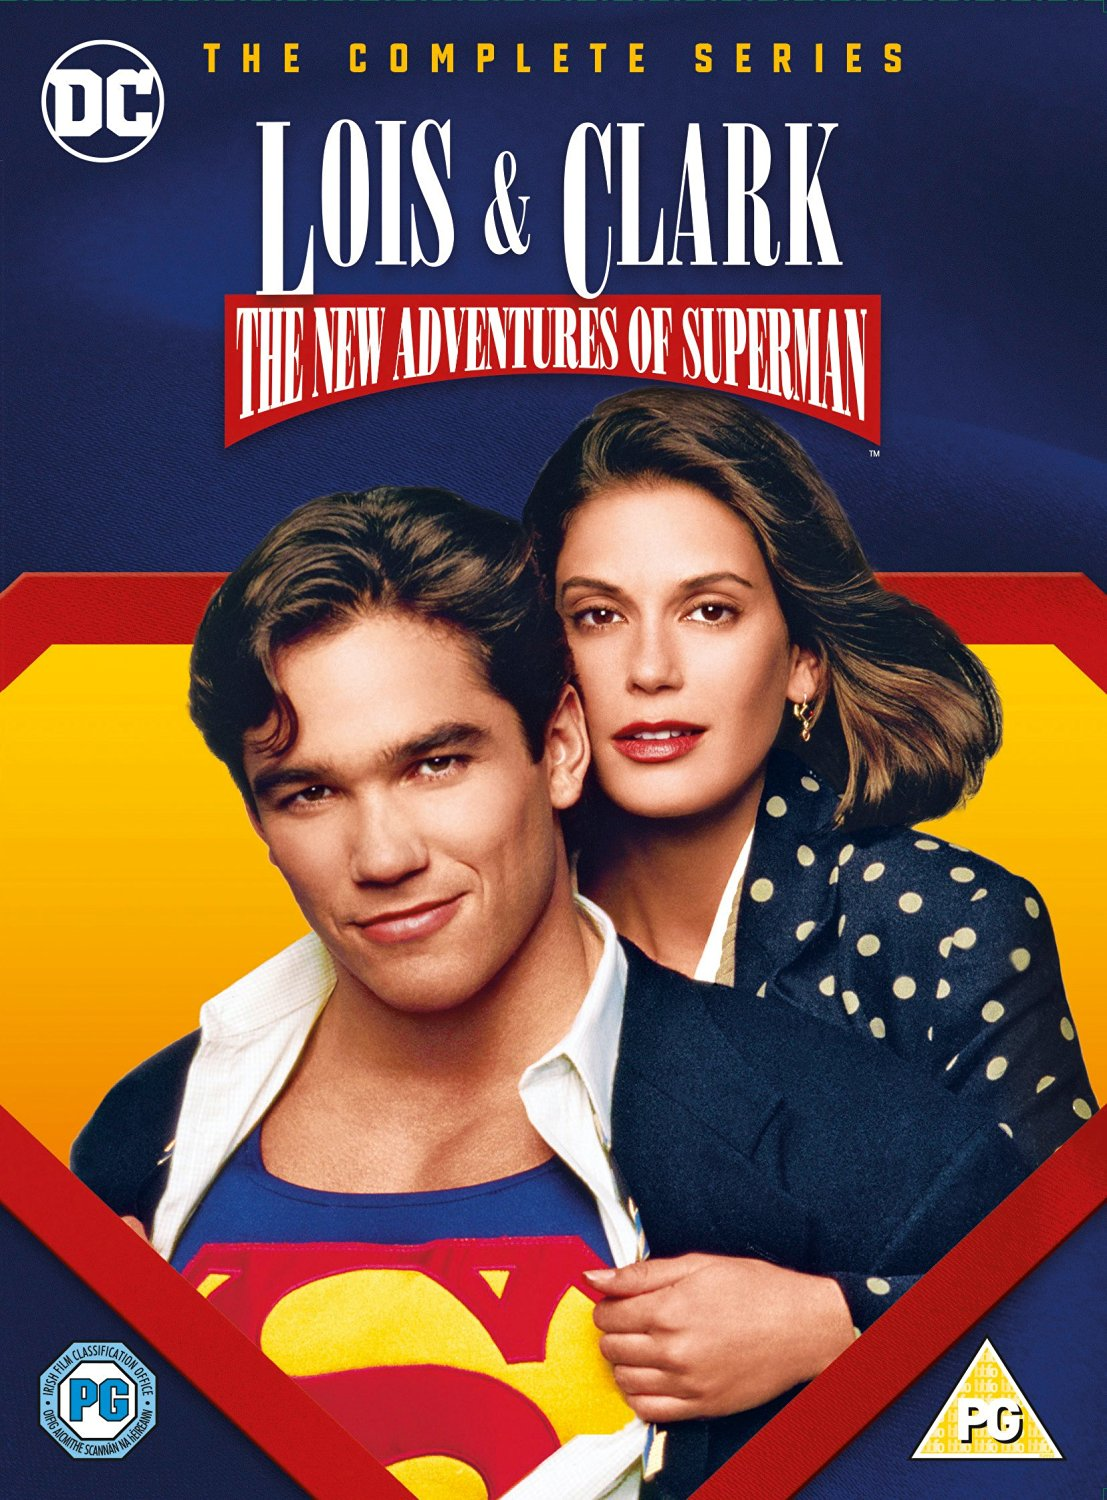 Lois & Clark: The New Adventures of Superman (TV Series 1993